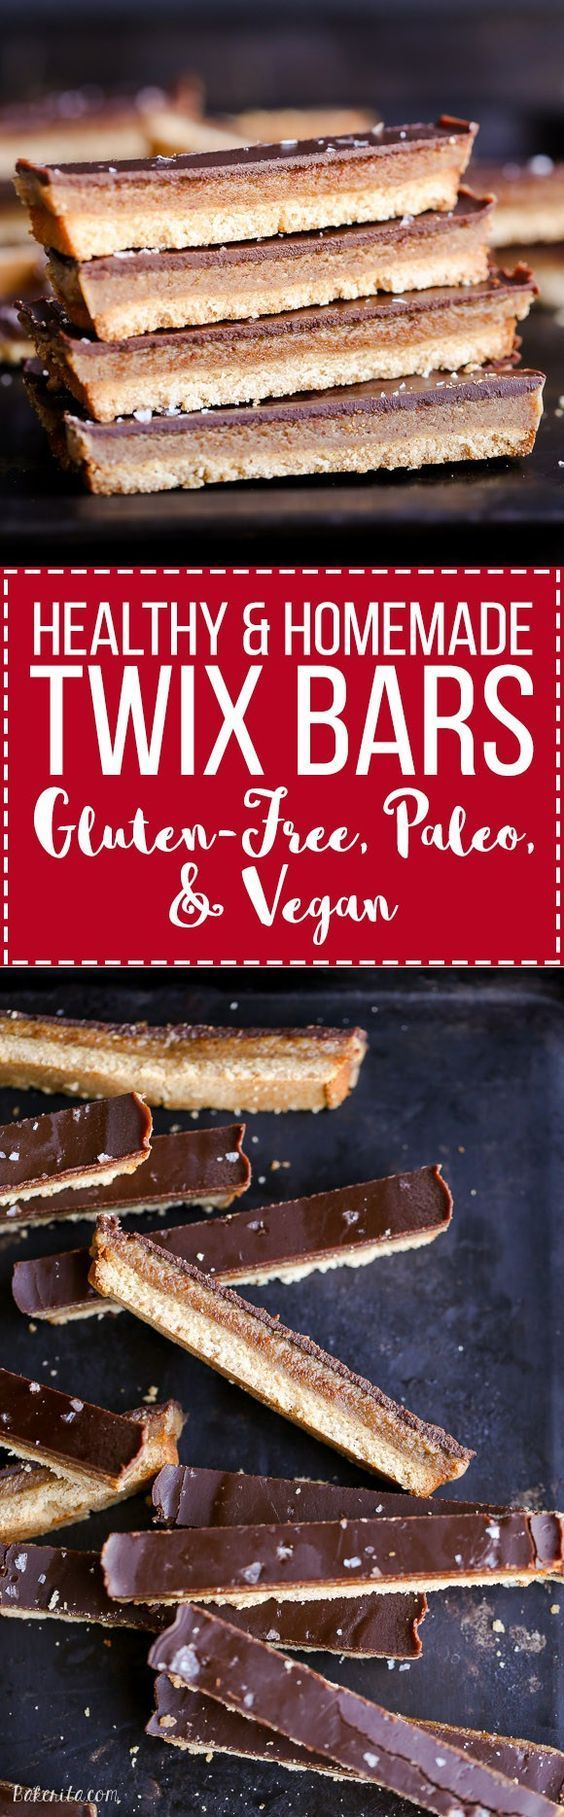 Healthy Snacks - Healthy and Homemade Twix Bars - Gluten-Free - Paleo and Vegan Recipe via Bakerita